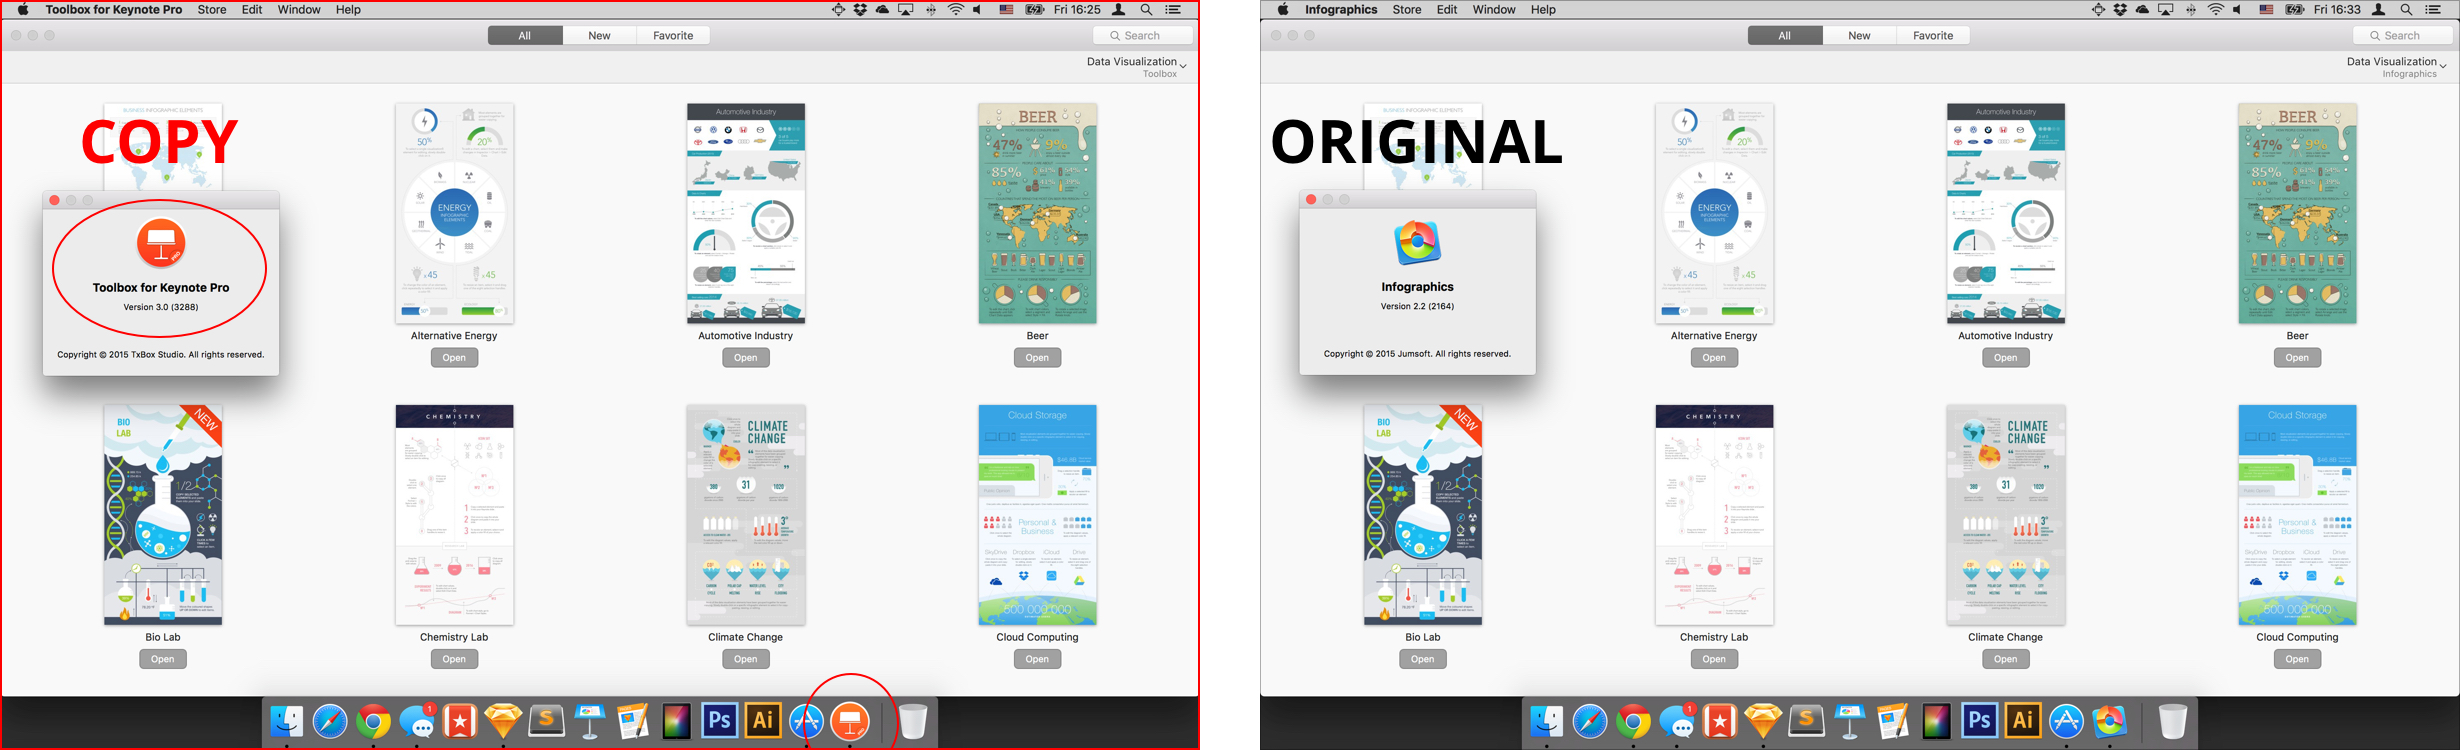 On Cases of Plagiarism on the Mac App Store - Jumsoft